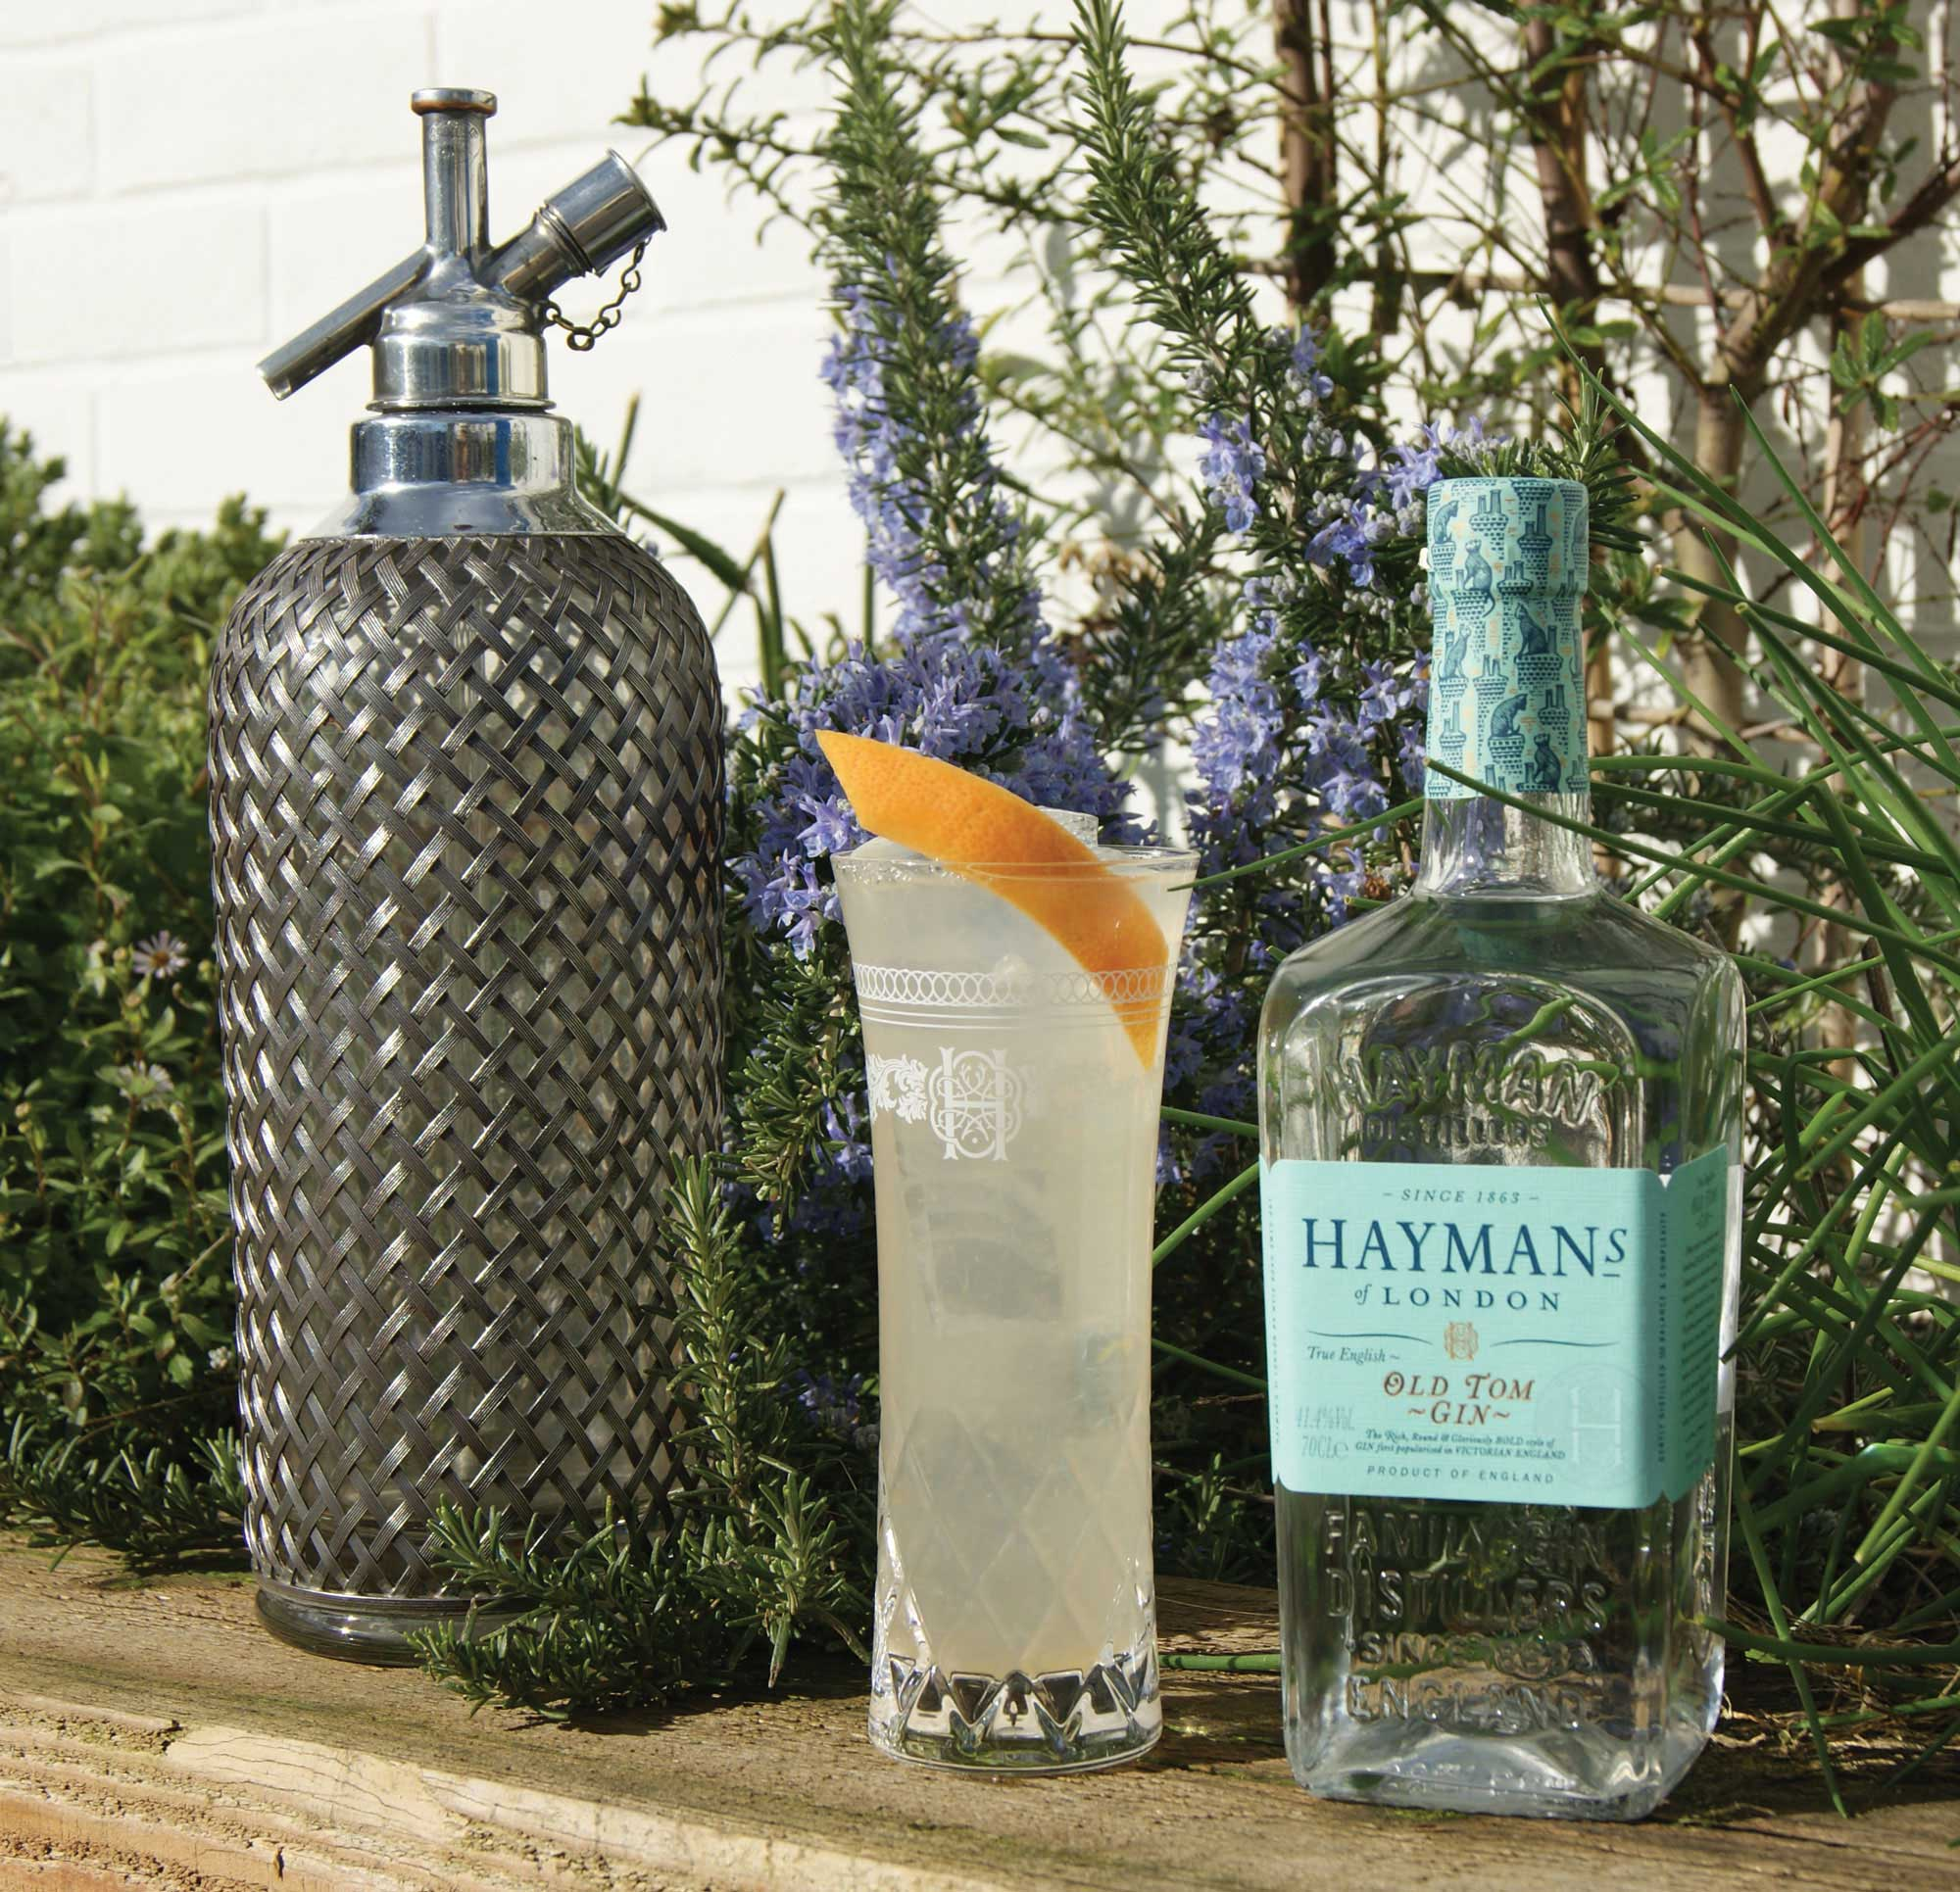 An example of the Grapefruit Spritz, the mixed drink (cocktail) featuring Hayman's Old Tom Gin, grapefruit juice, and soda water; photo by Hayman's of London